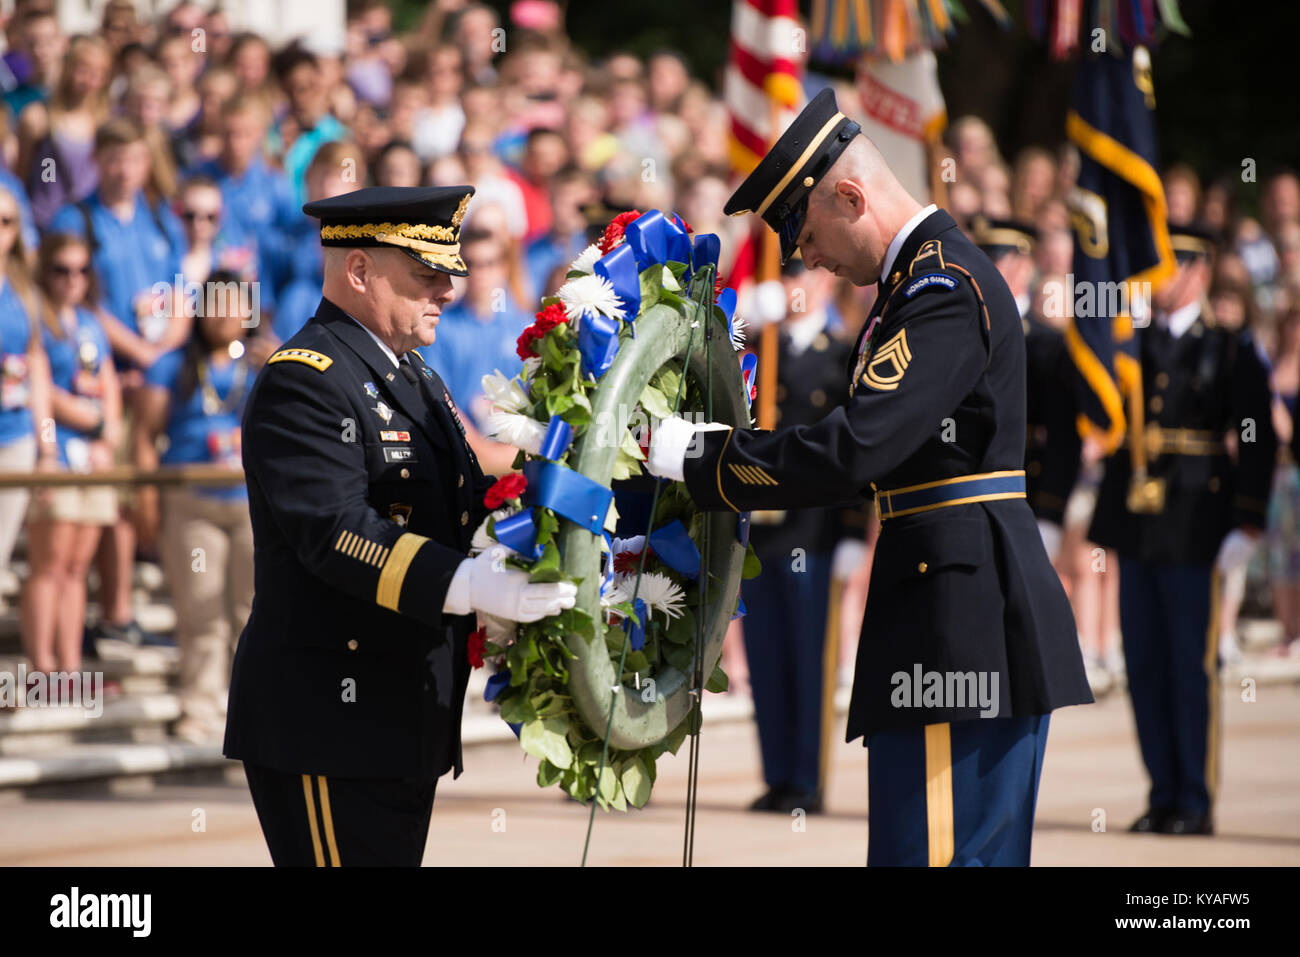 Wreath laying at the Tomb of the Unknown Soldier in Arlington National Cemetery for the Army's 241st Birthday (27392145000) - Stock Image